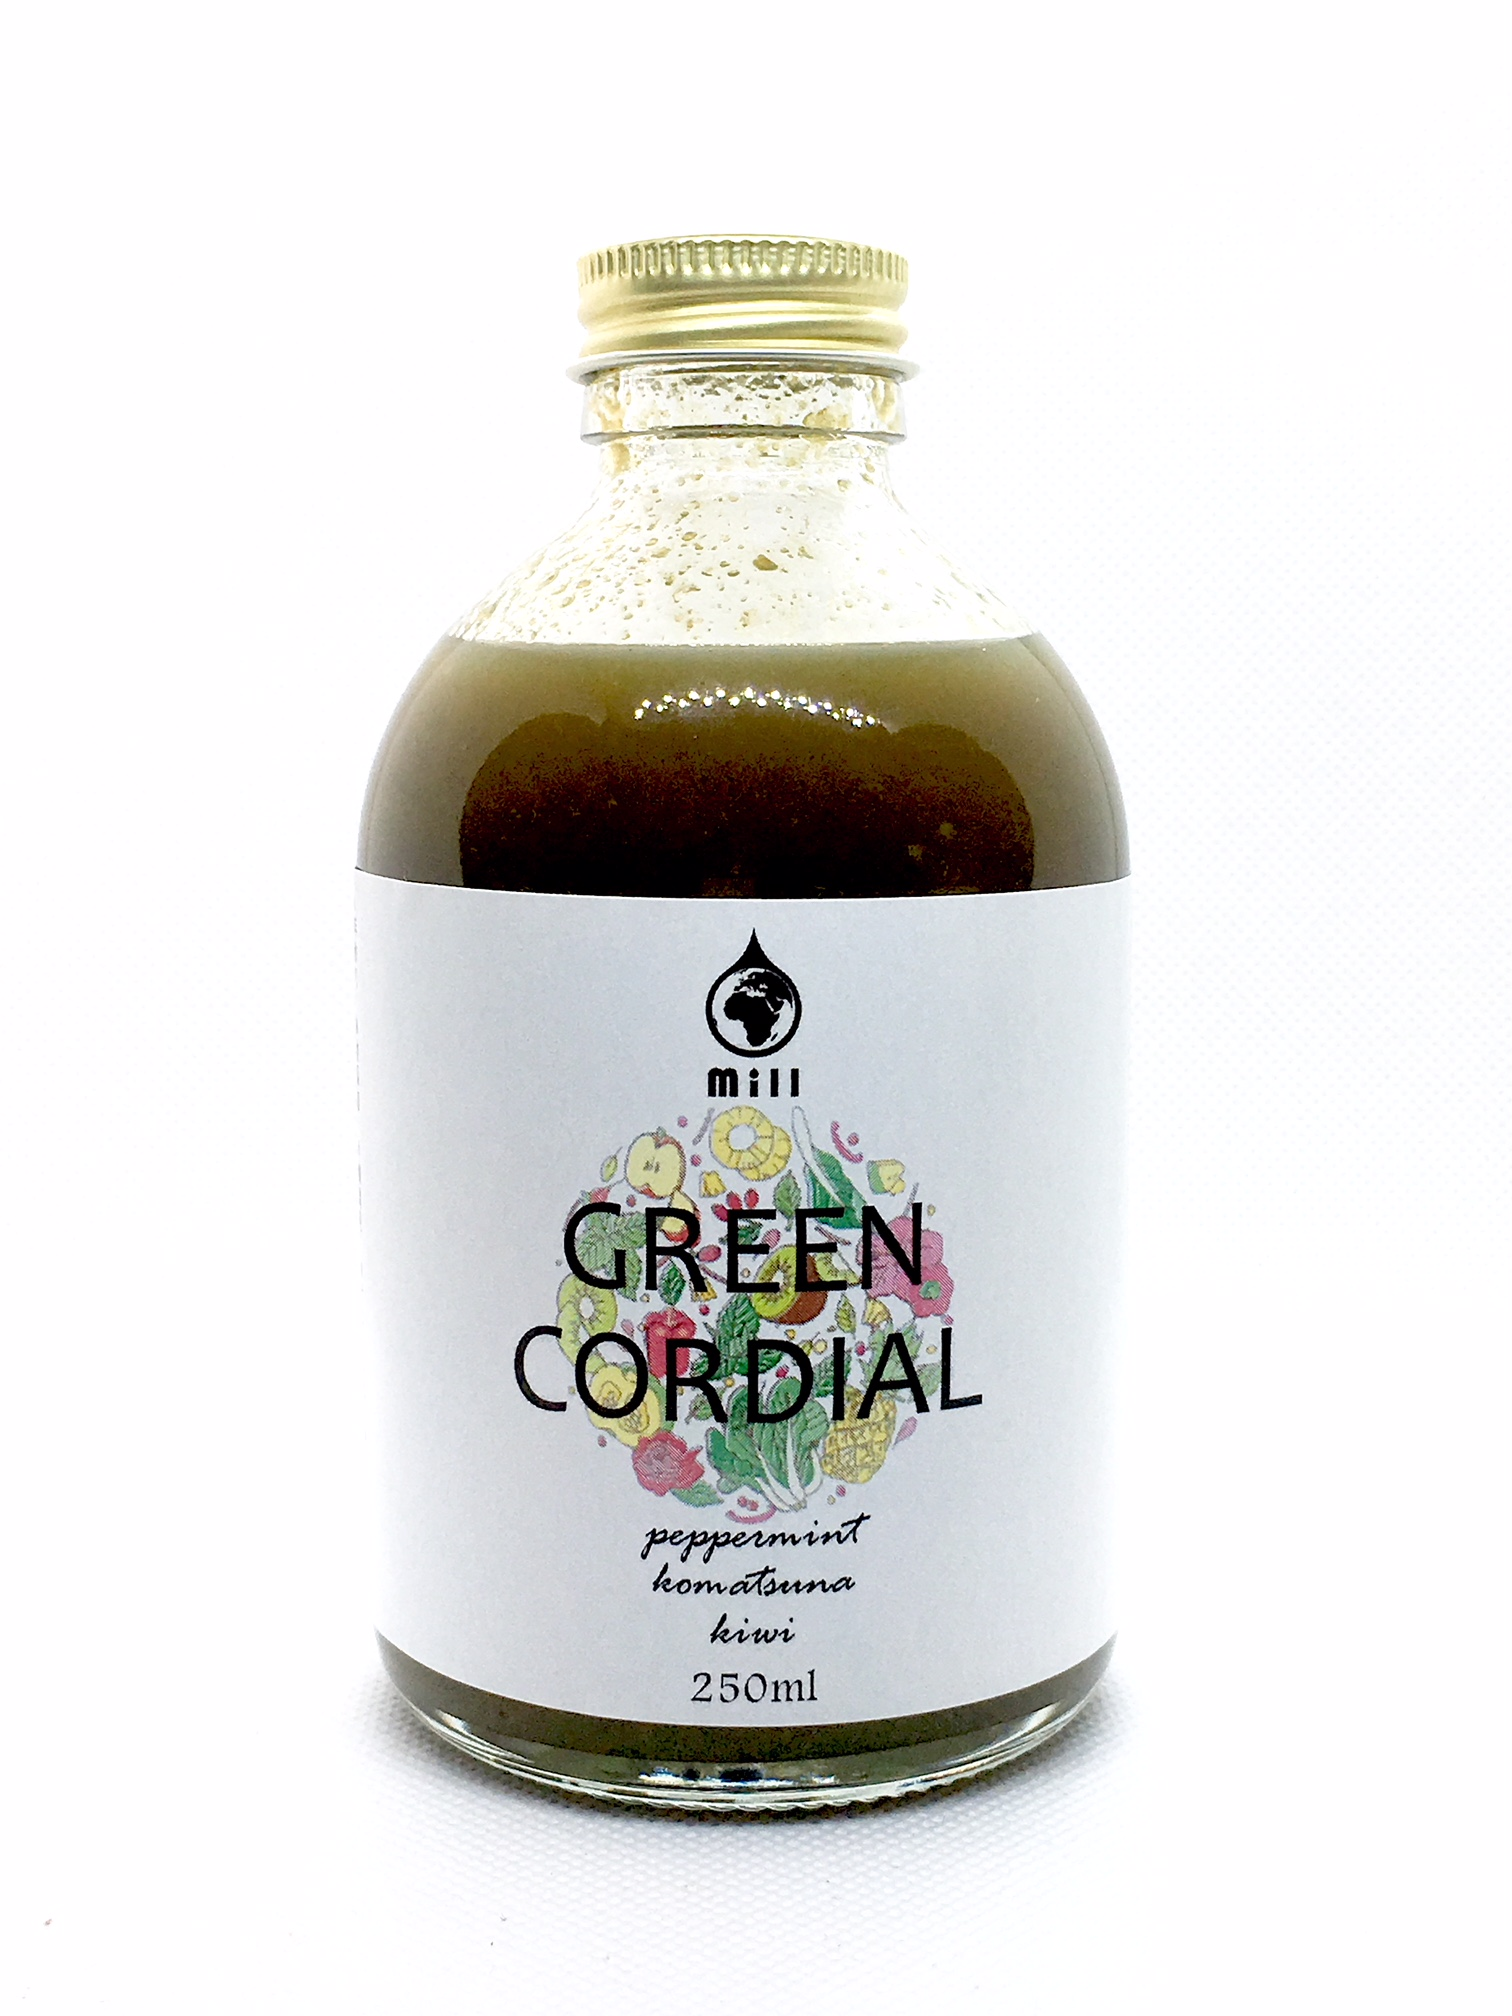 GREEN CORDIAL 【スッキリ気分・エイジングケアに】